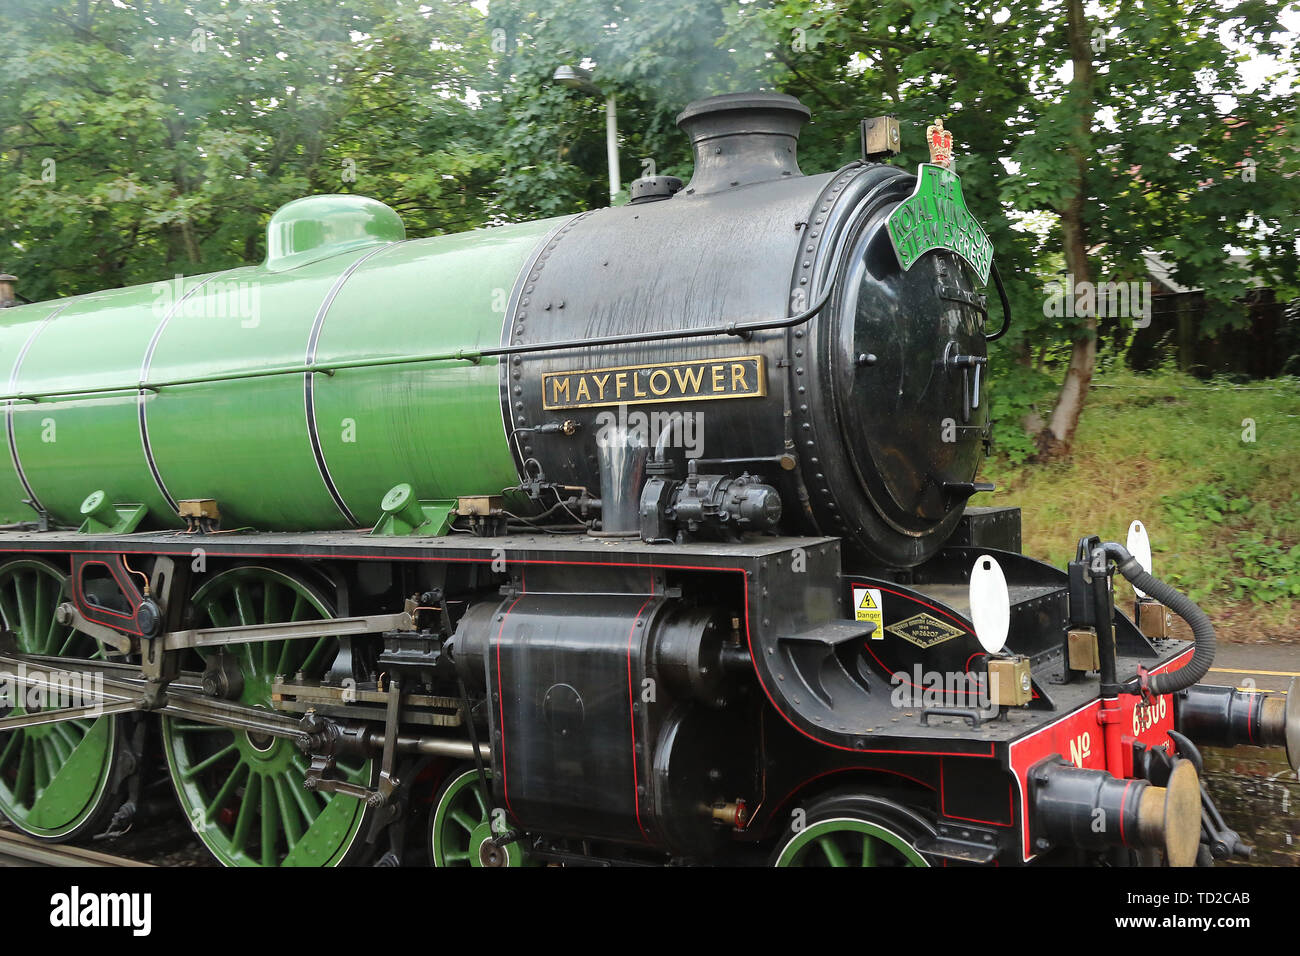 Mayflower LNER Thompson Class B1 61306 Steam Locomotive, The Royal Windsor Steam Express, Hounslow Railway Station, London, UK, 11 June 2019, Photo by Stock Photo